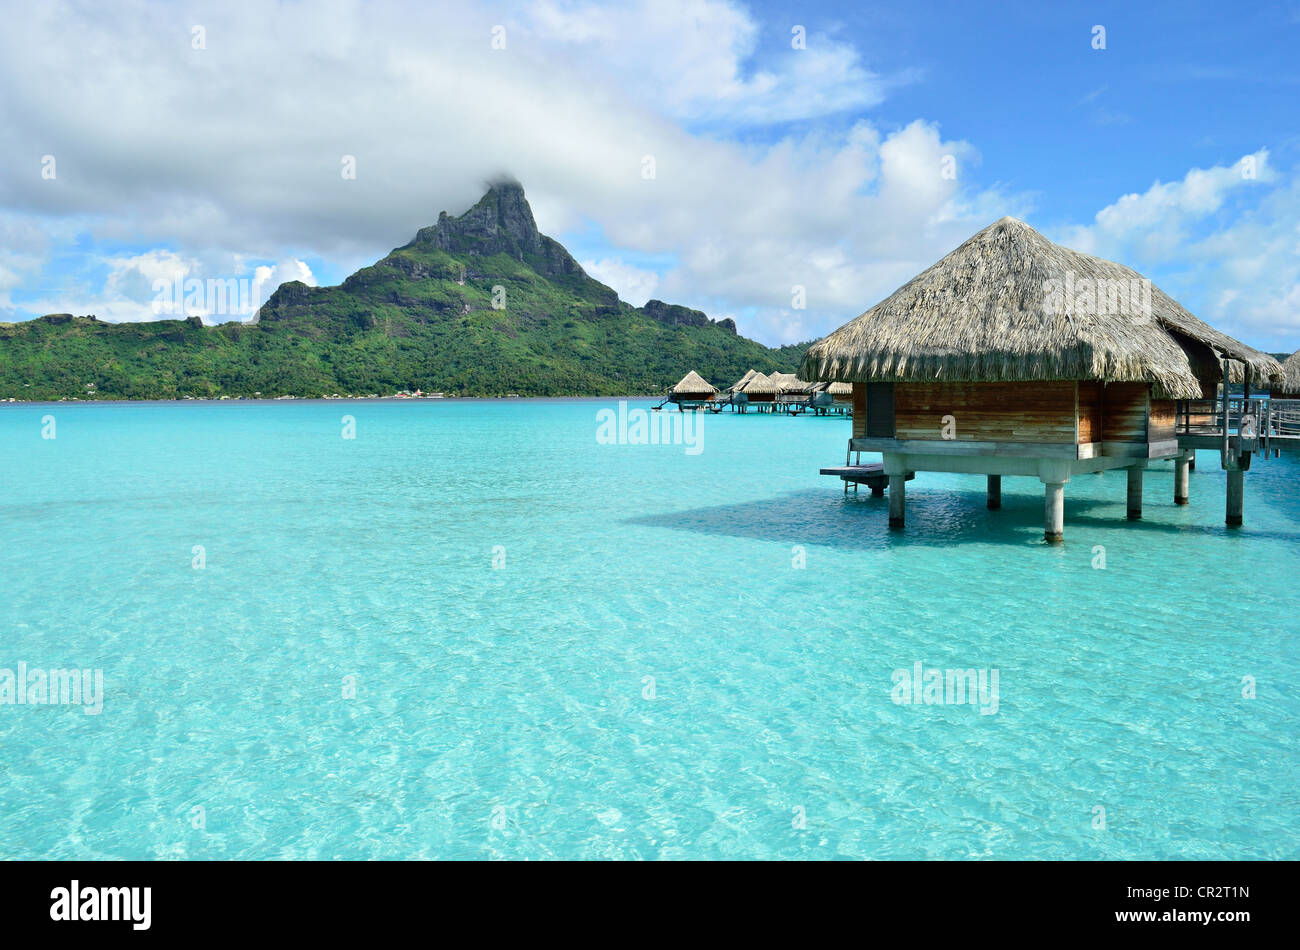 Luxury overwater bungalow in a vacation resort in the clear blue lagoon with a view on the tropical island of Bora - Stock Image